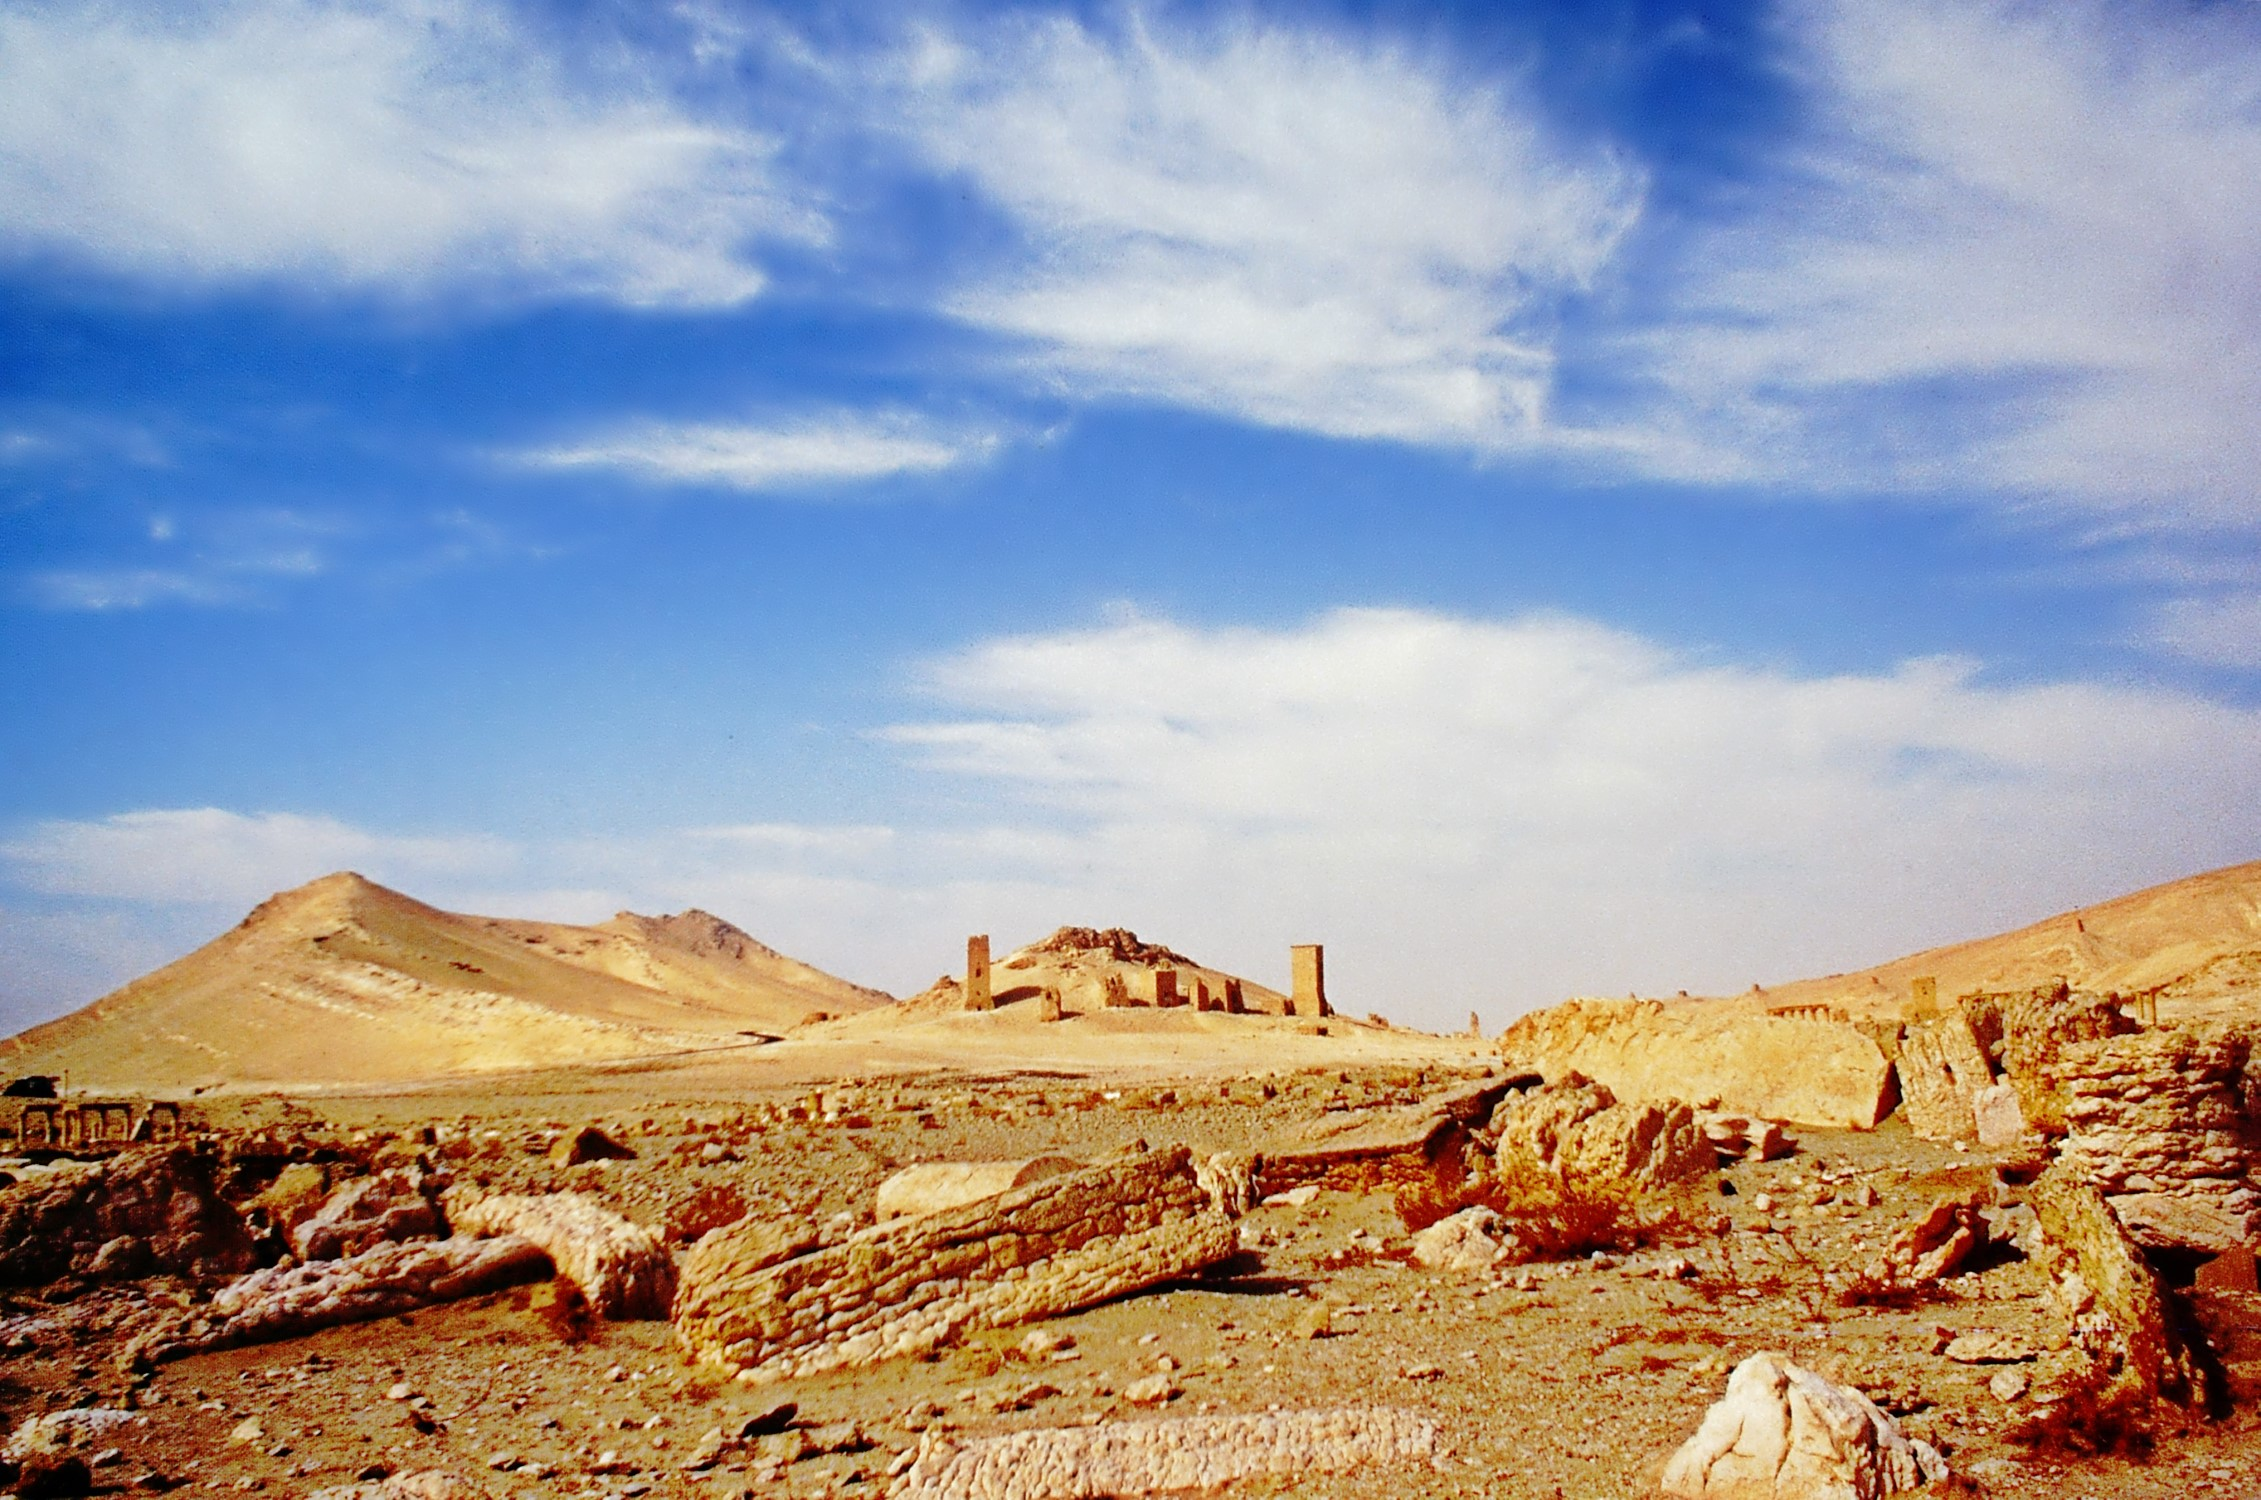 Desert landscape with ruins in the distance